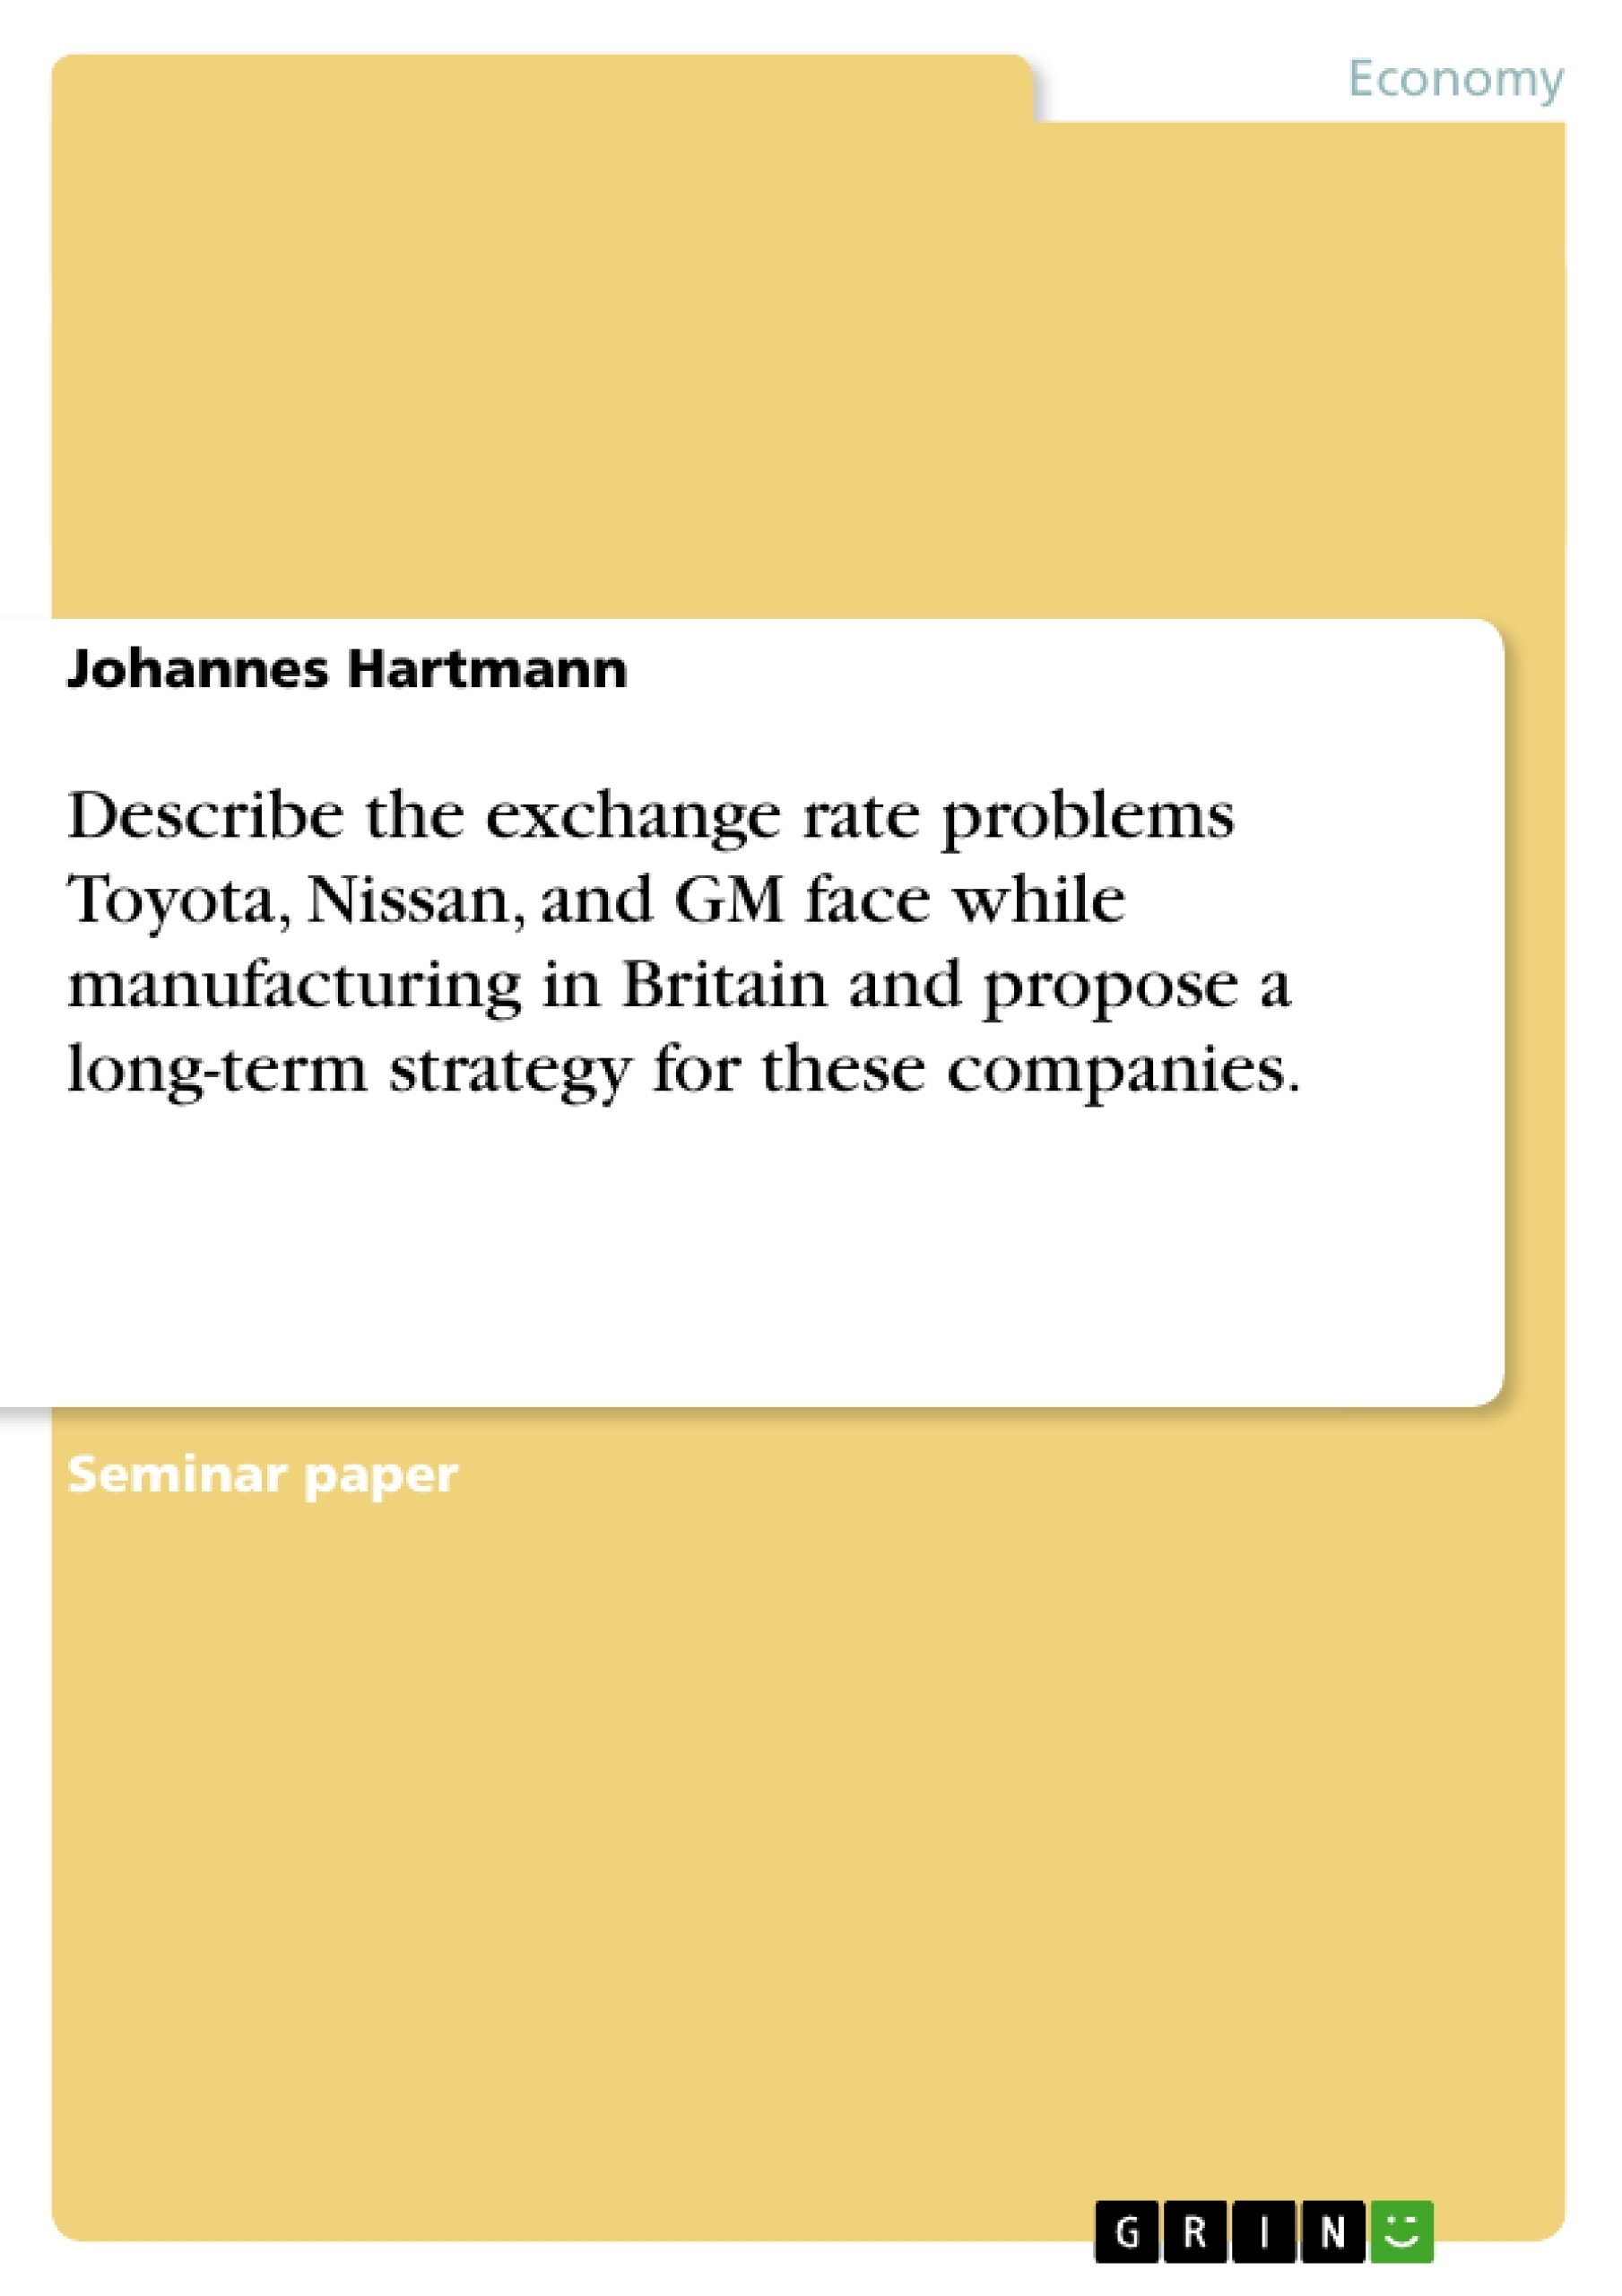 Title: Describe the exchange rate problems Toyota, Nissan, and GM face while manufacturing in Britain and propose a long-term strategy for these companies.